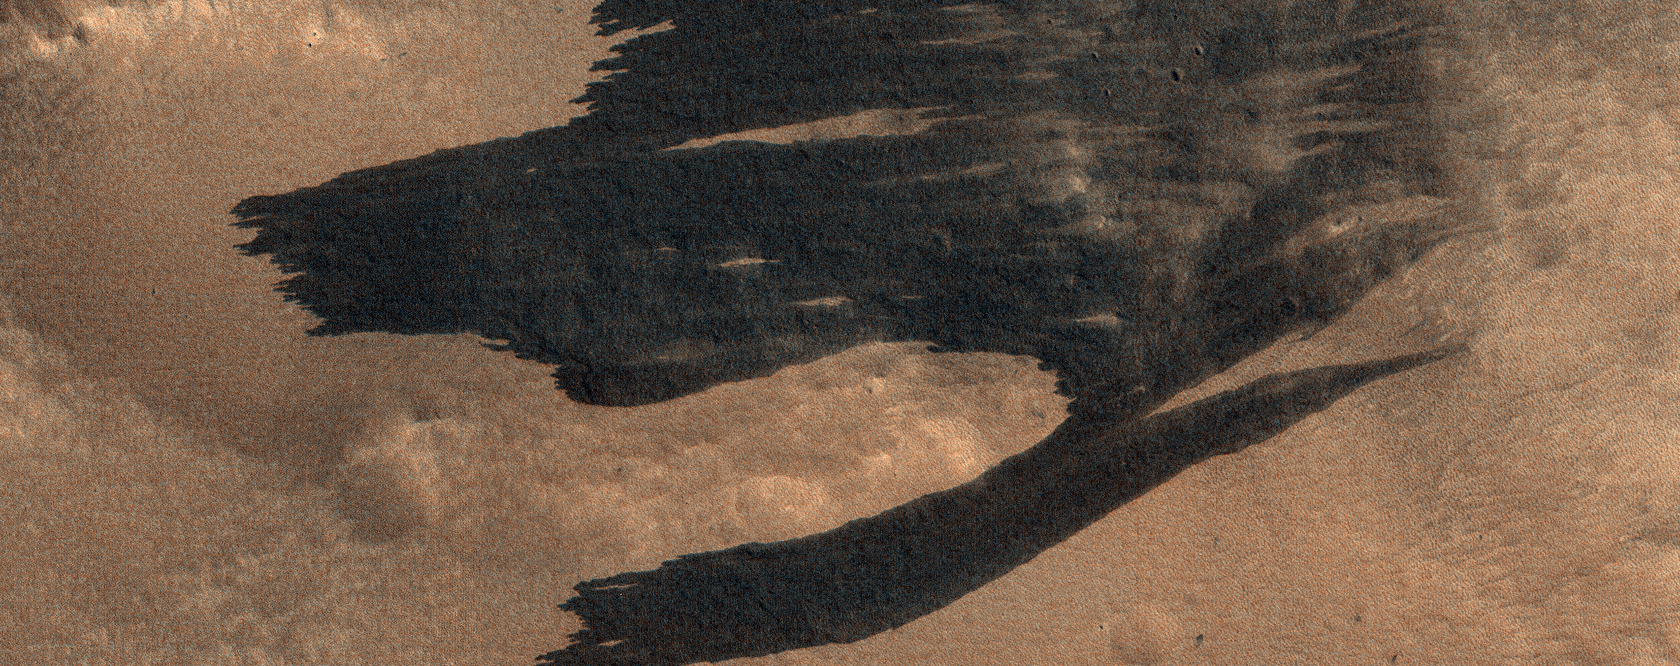 Impact-Induced Dust Avalanches